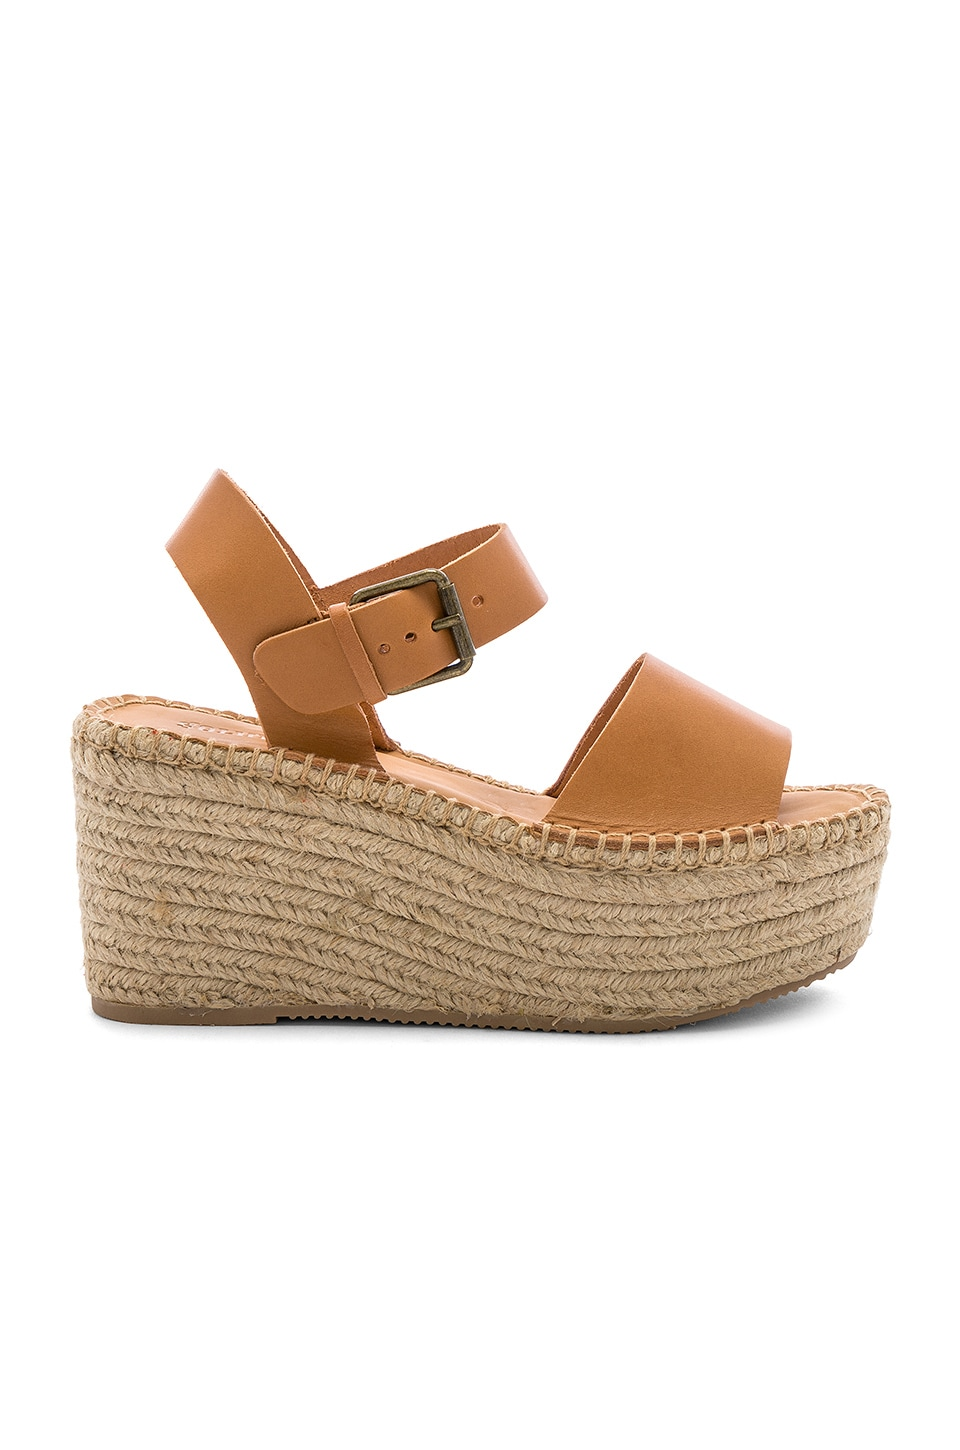 Soludos Minorca High Platform in Nude